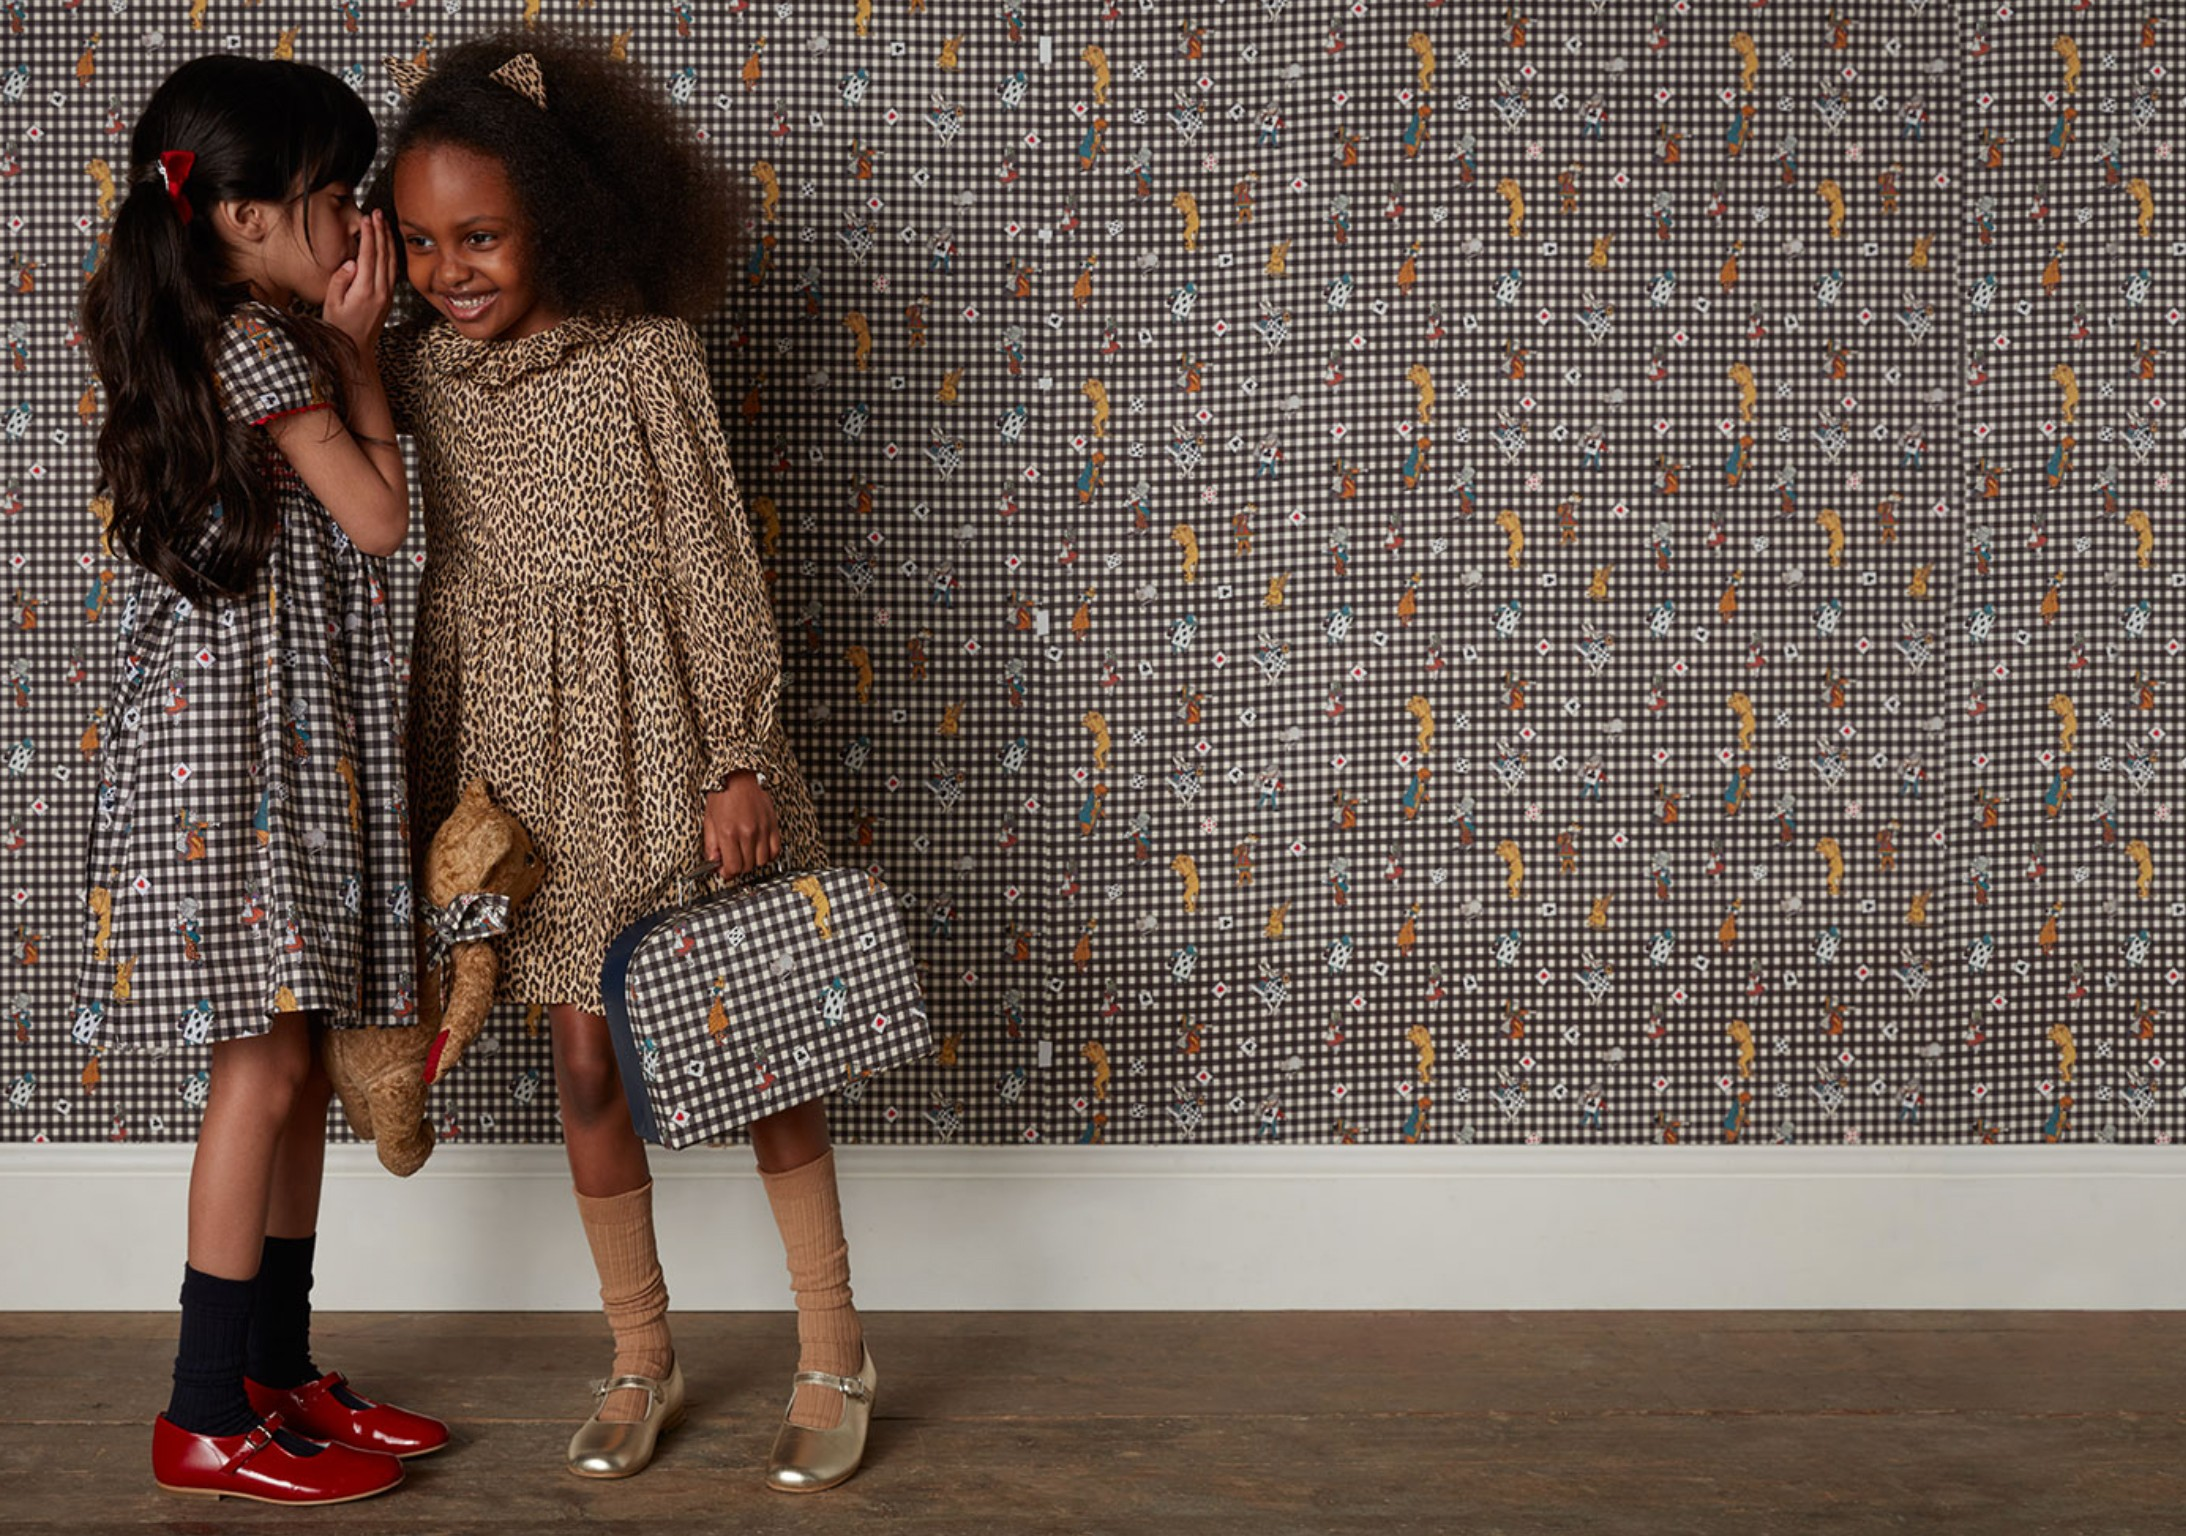 House-of-Hackney-launches-kids'-fashion-collection-with-La-Coqueta